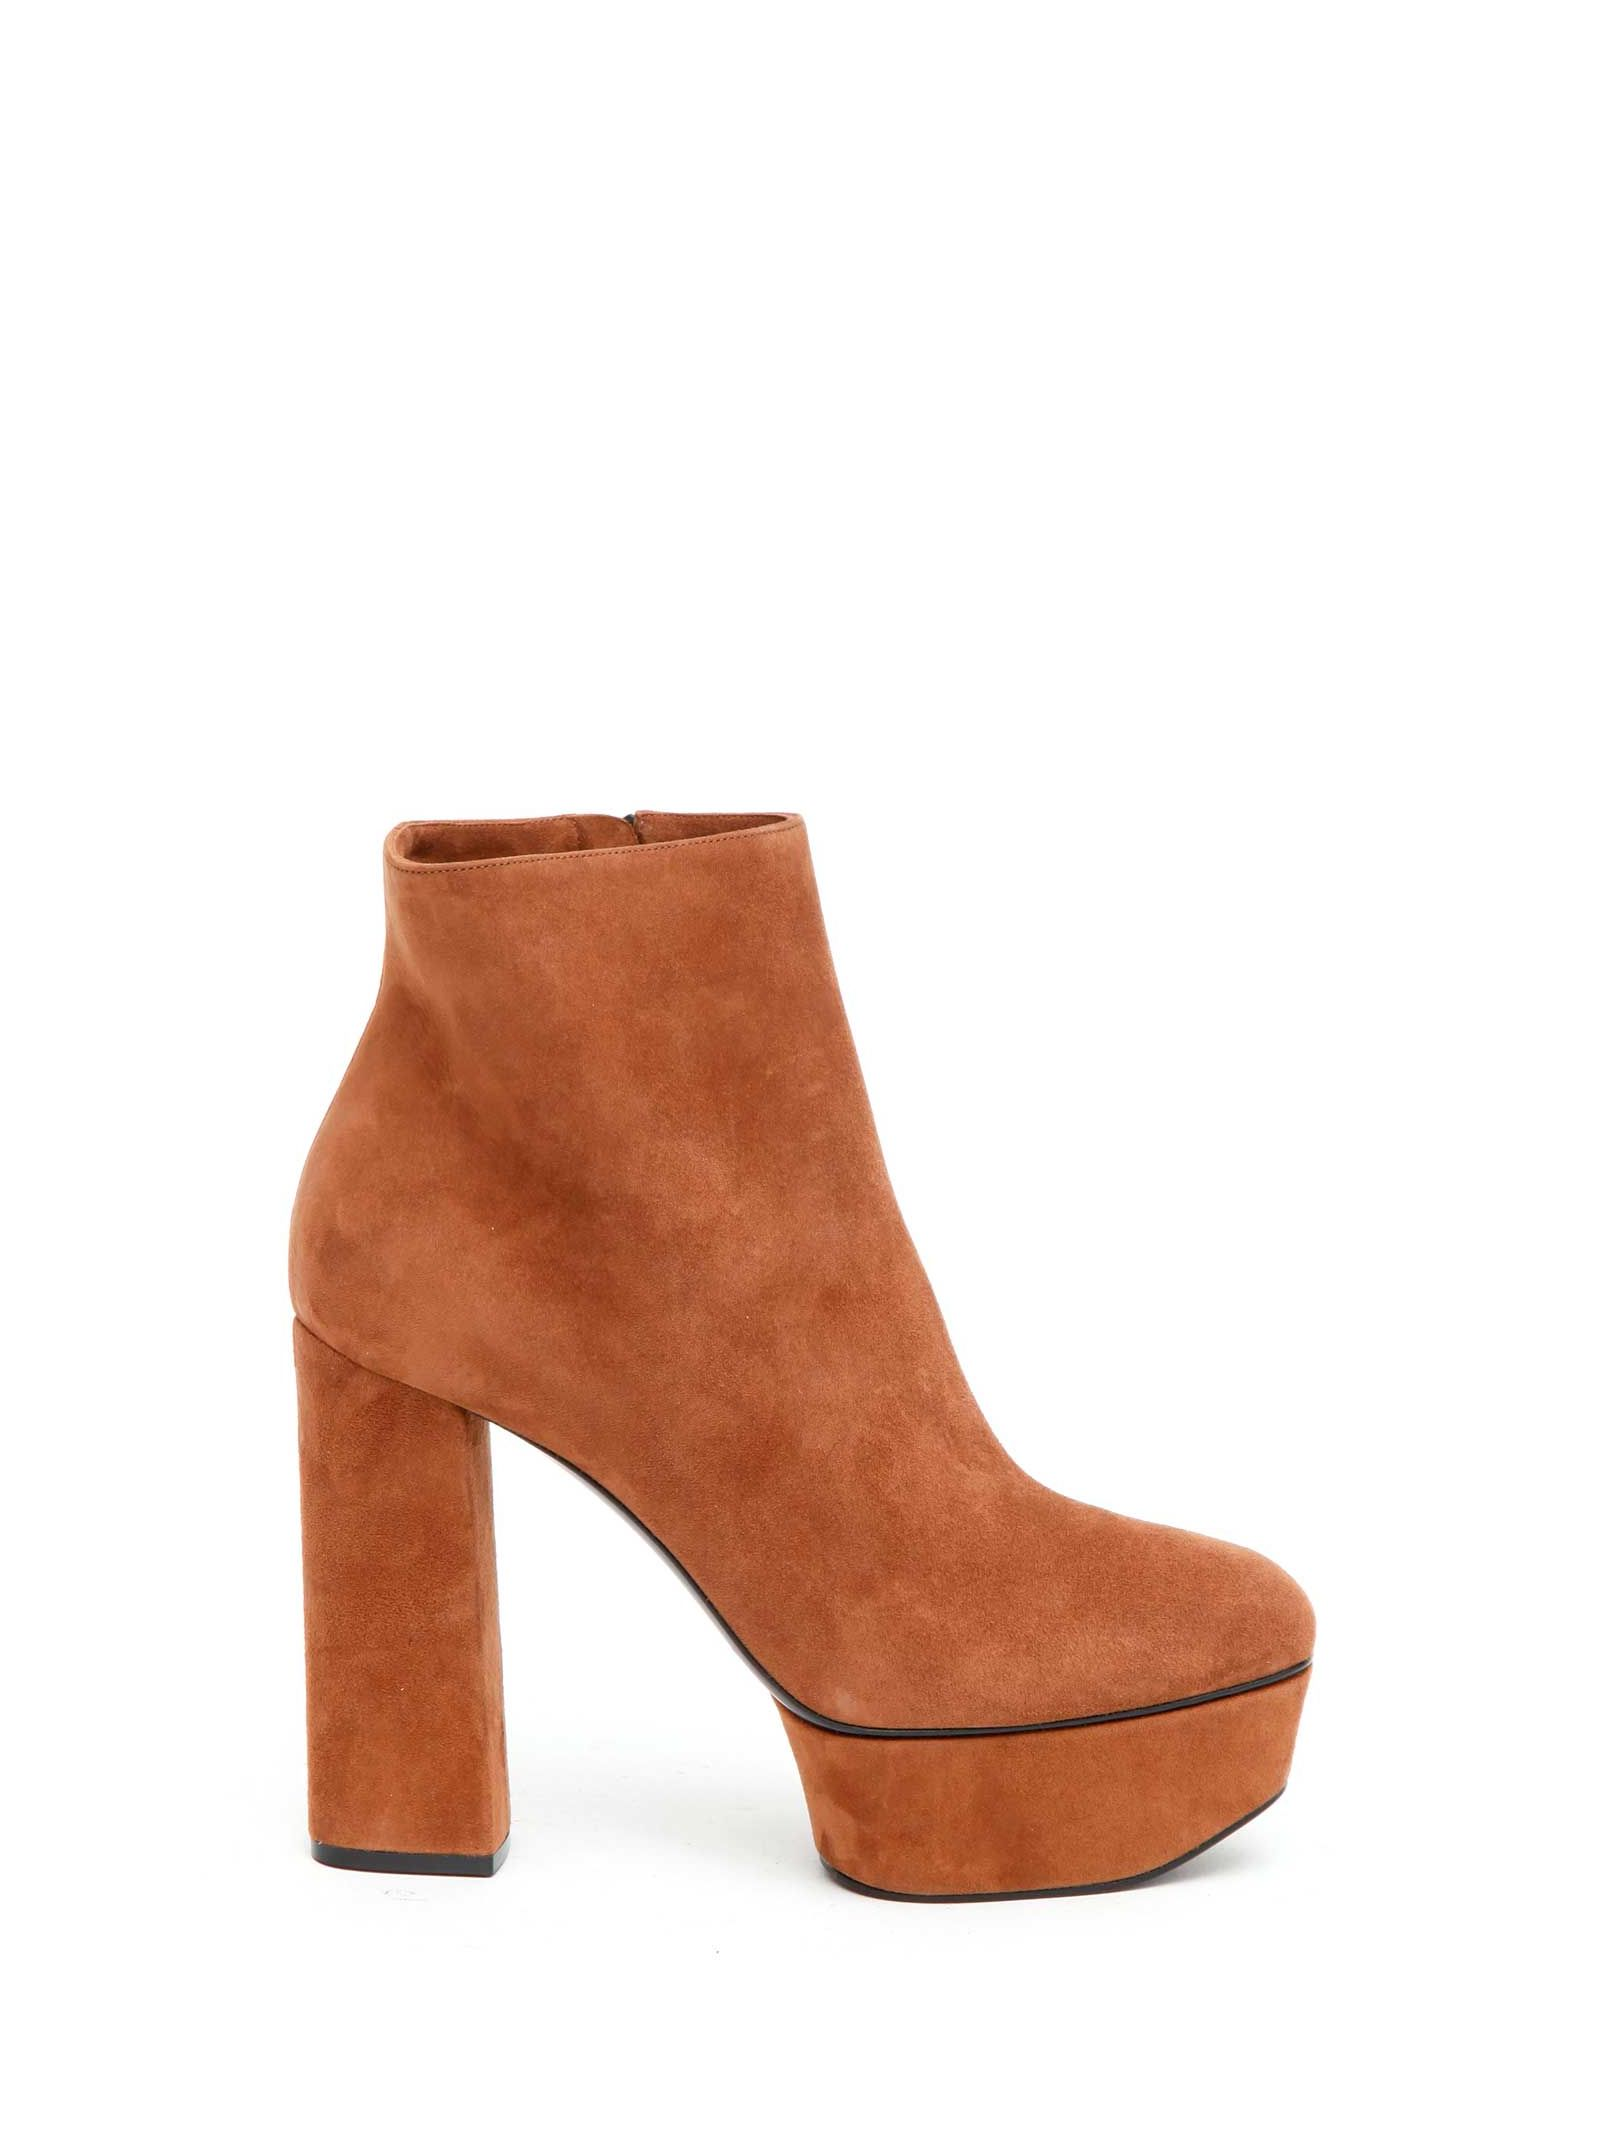 Suede platform booties featuring side zip closure from Casadei. Heel: 120mm.